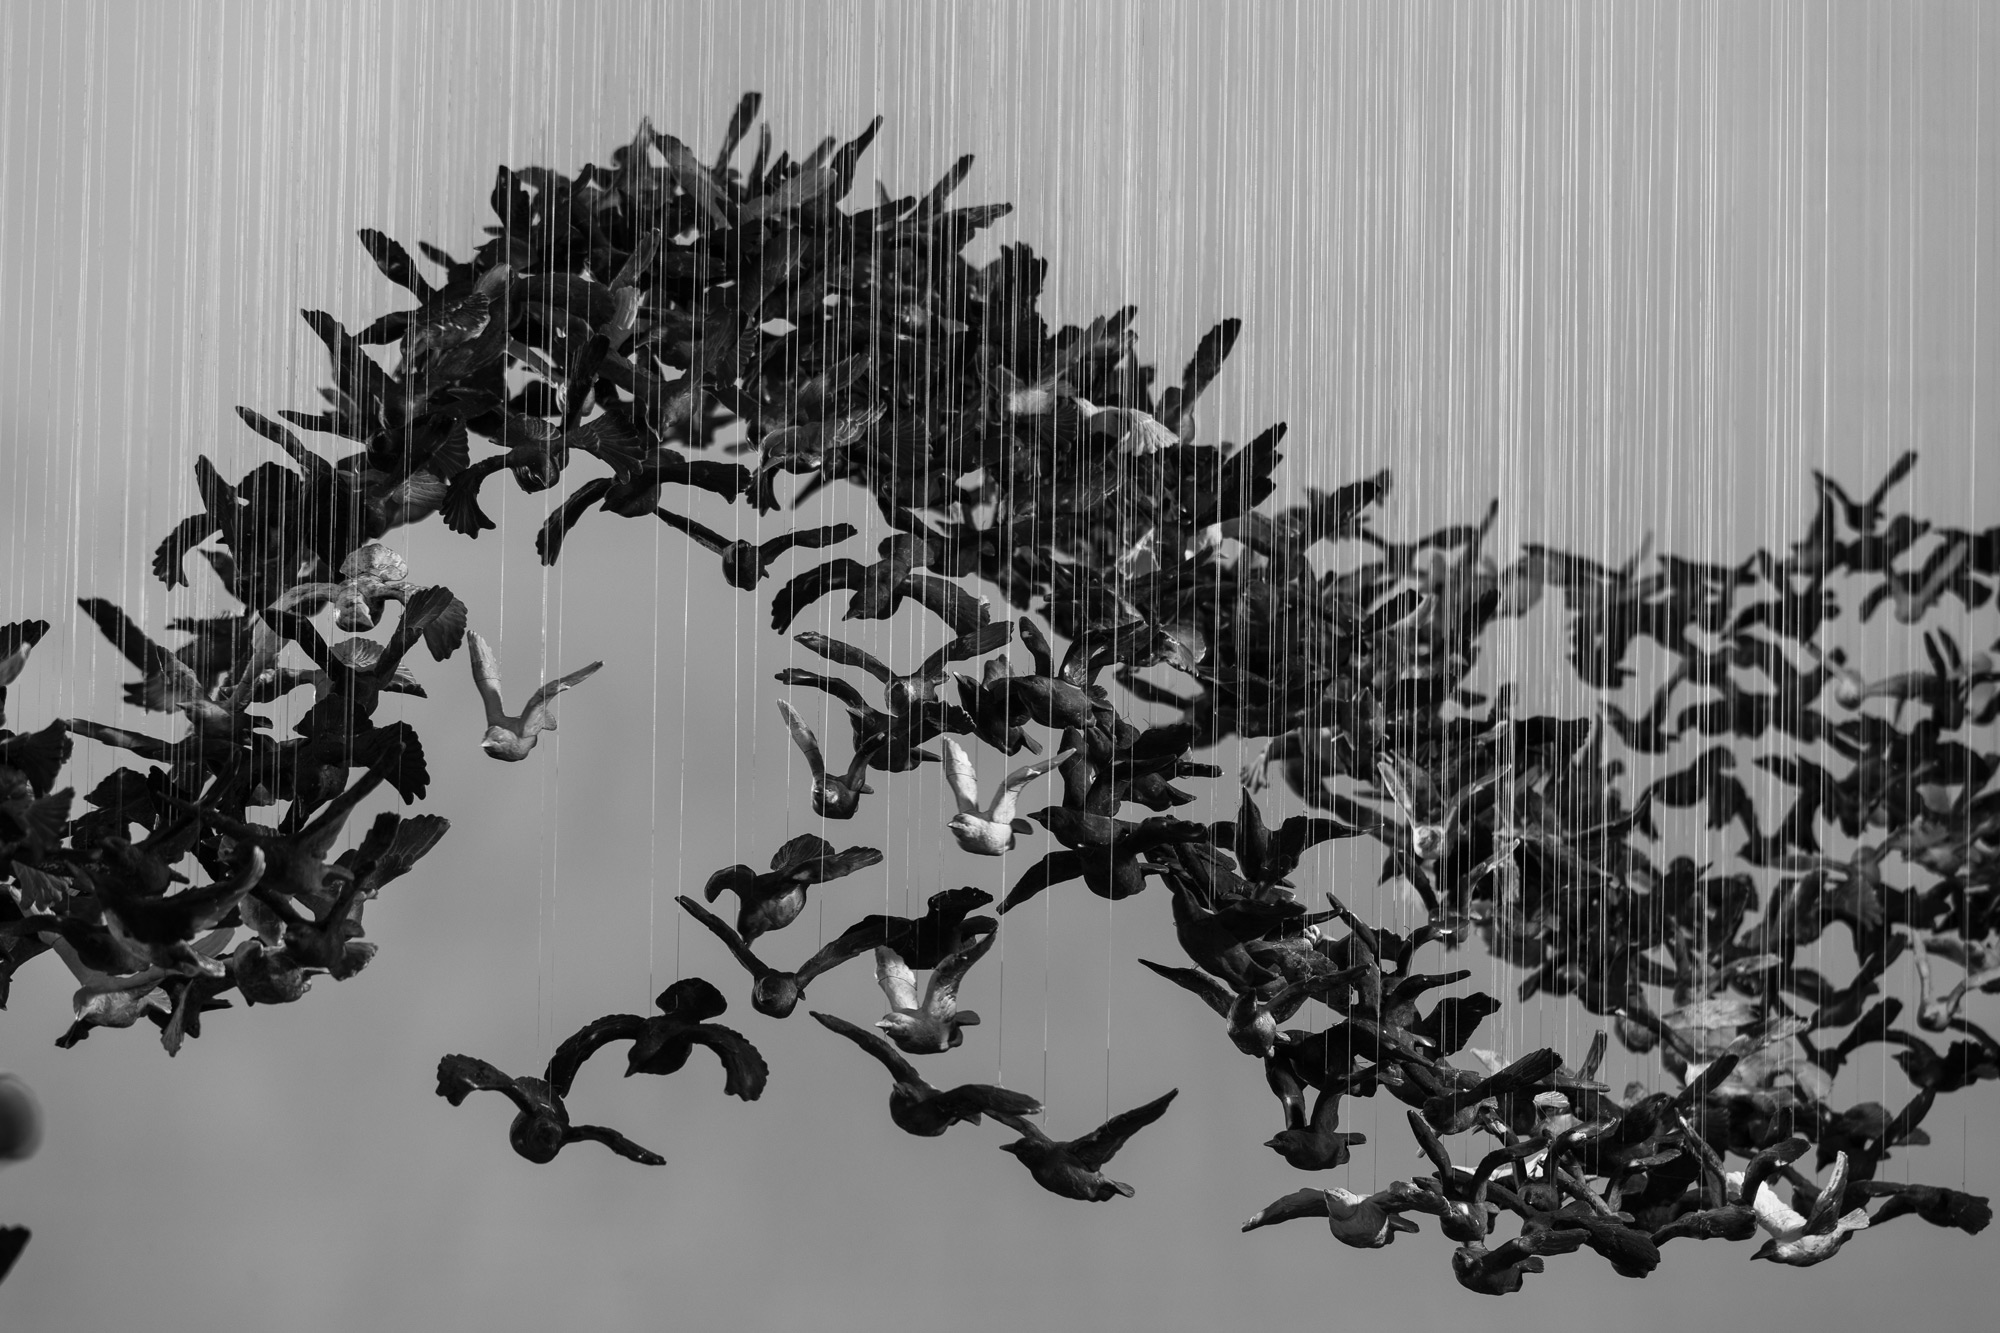 10,000 Porcelain Birds Create a Calligraphic Landscape at the National Gallery of Victoria